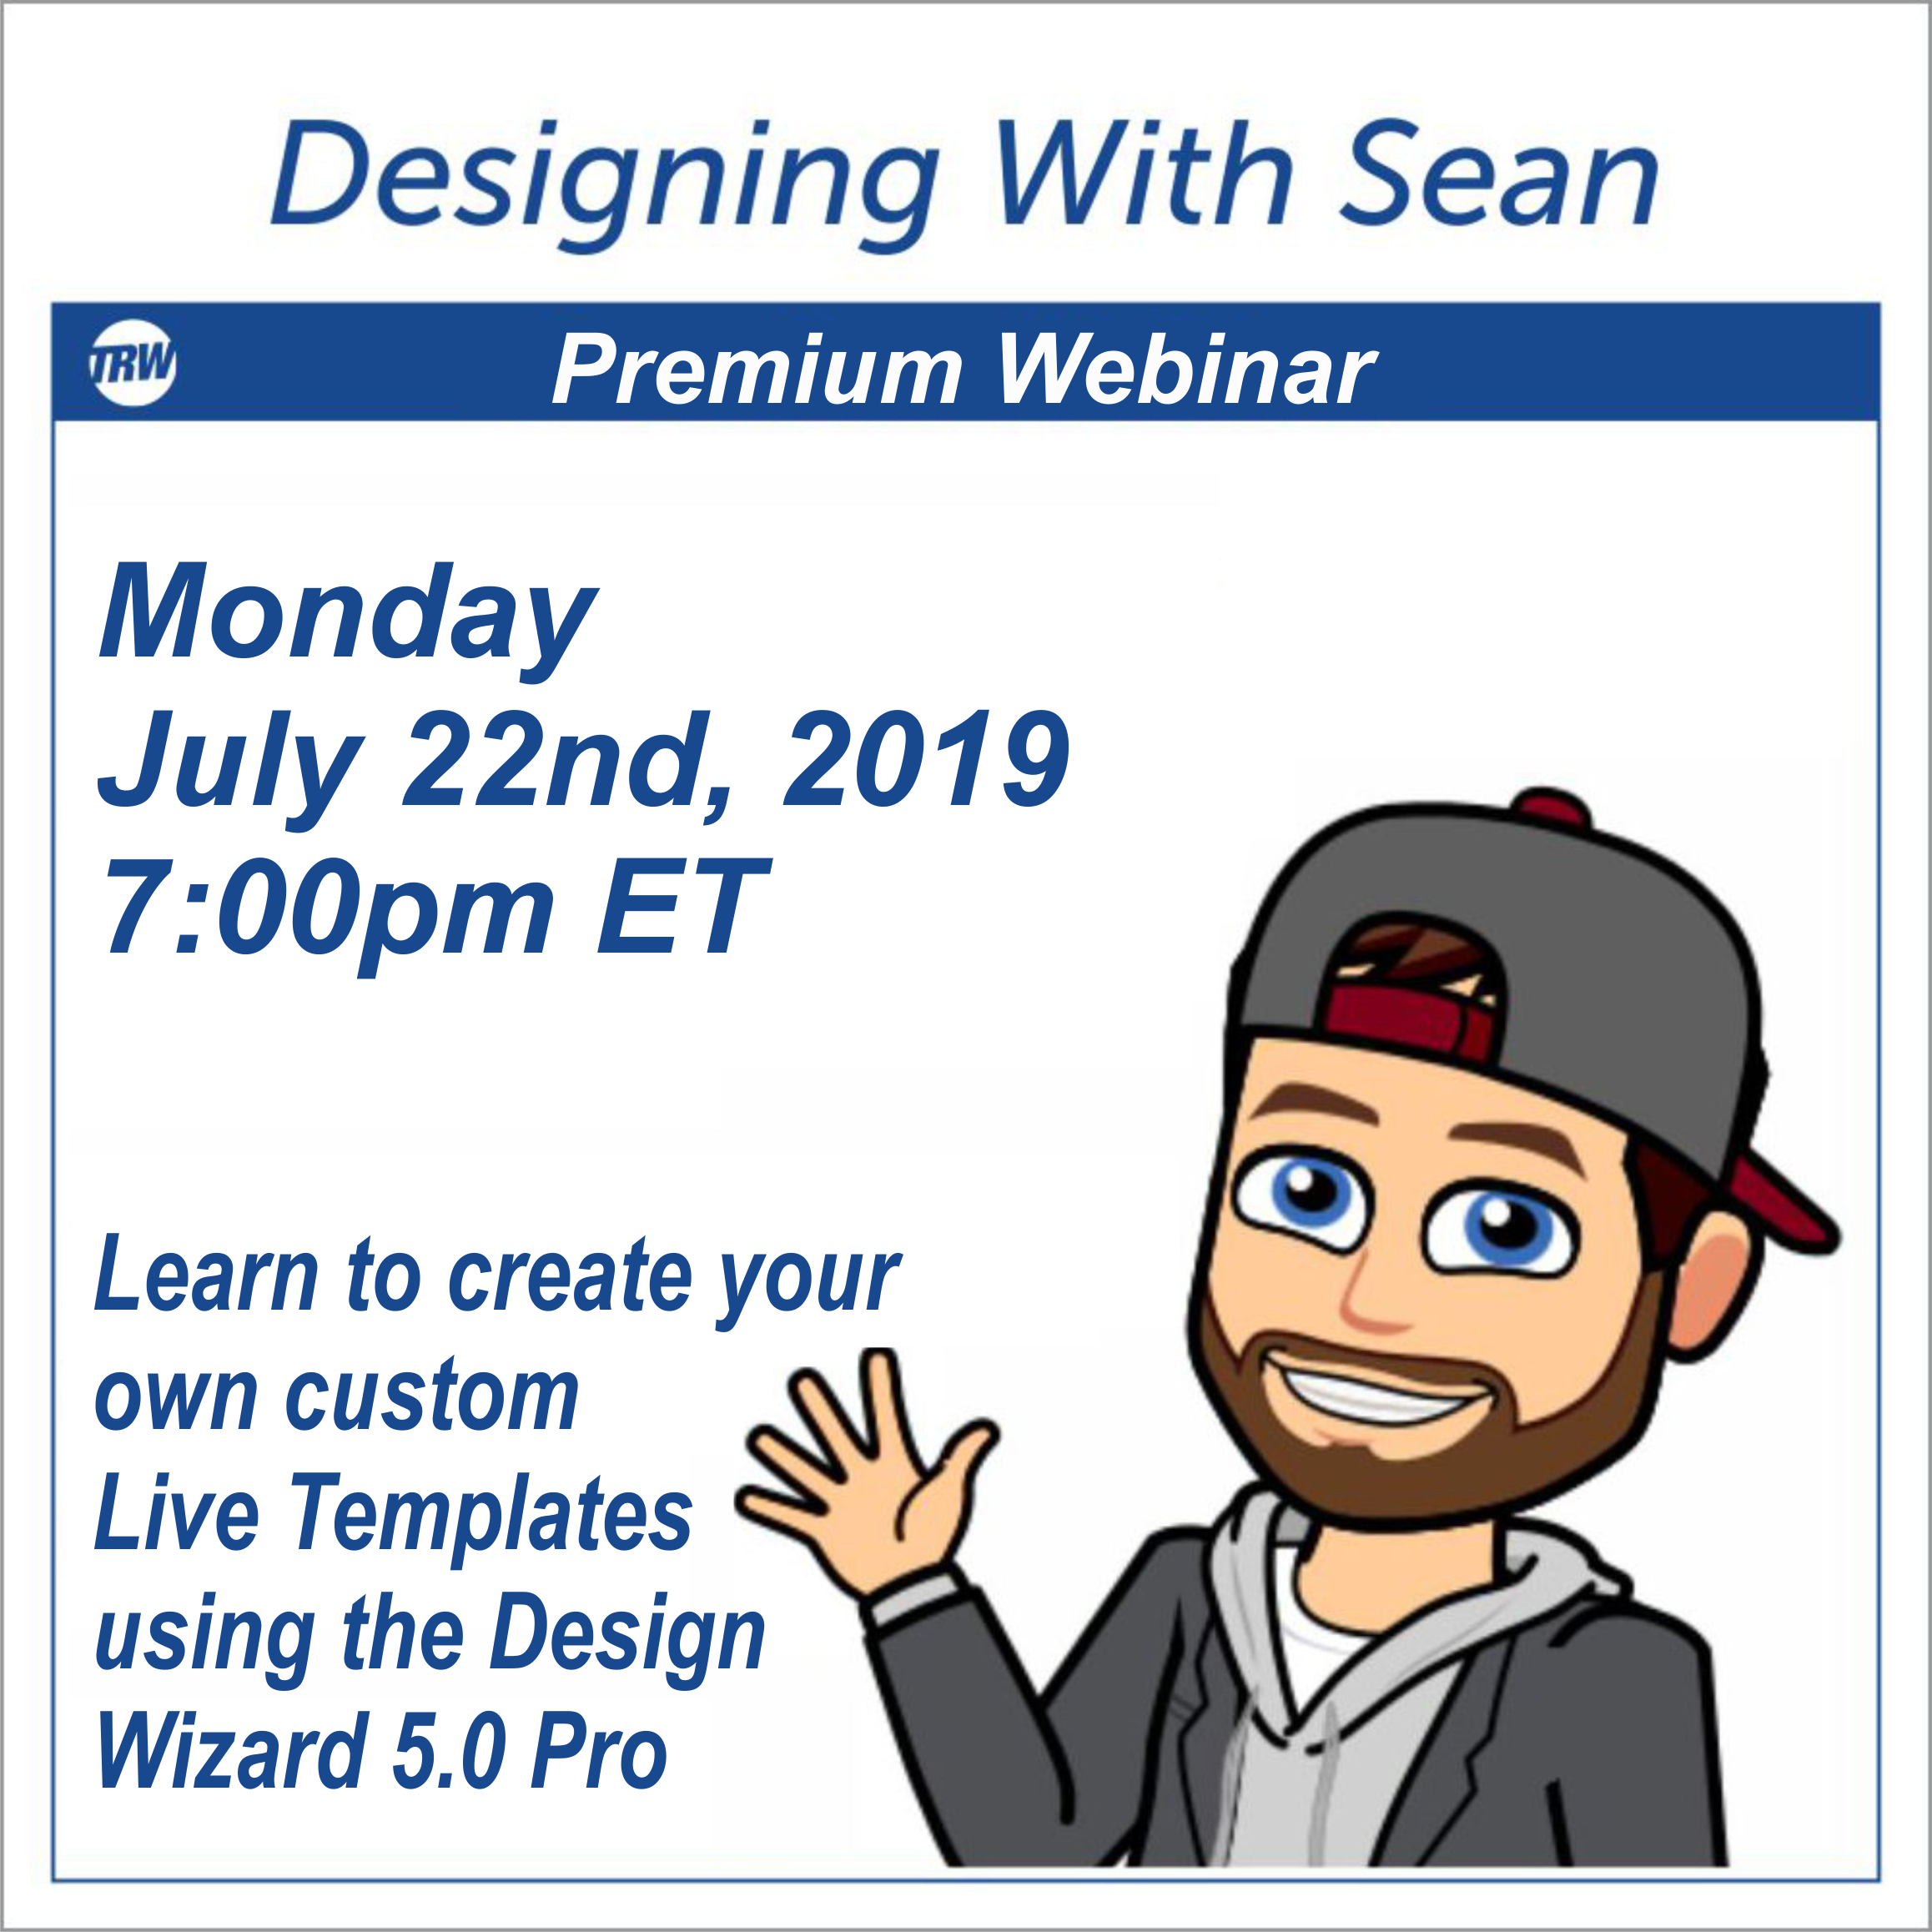 Designing with Sean - Learn to create your own custom Live Templates using the Design Wizard 5.0 Pro  7:00 pm ET